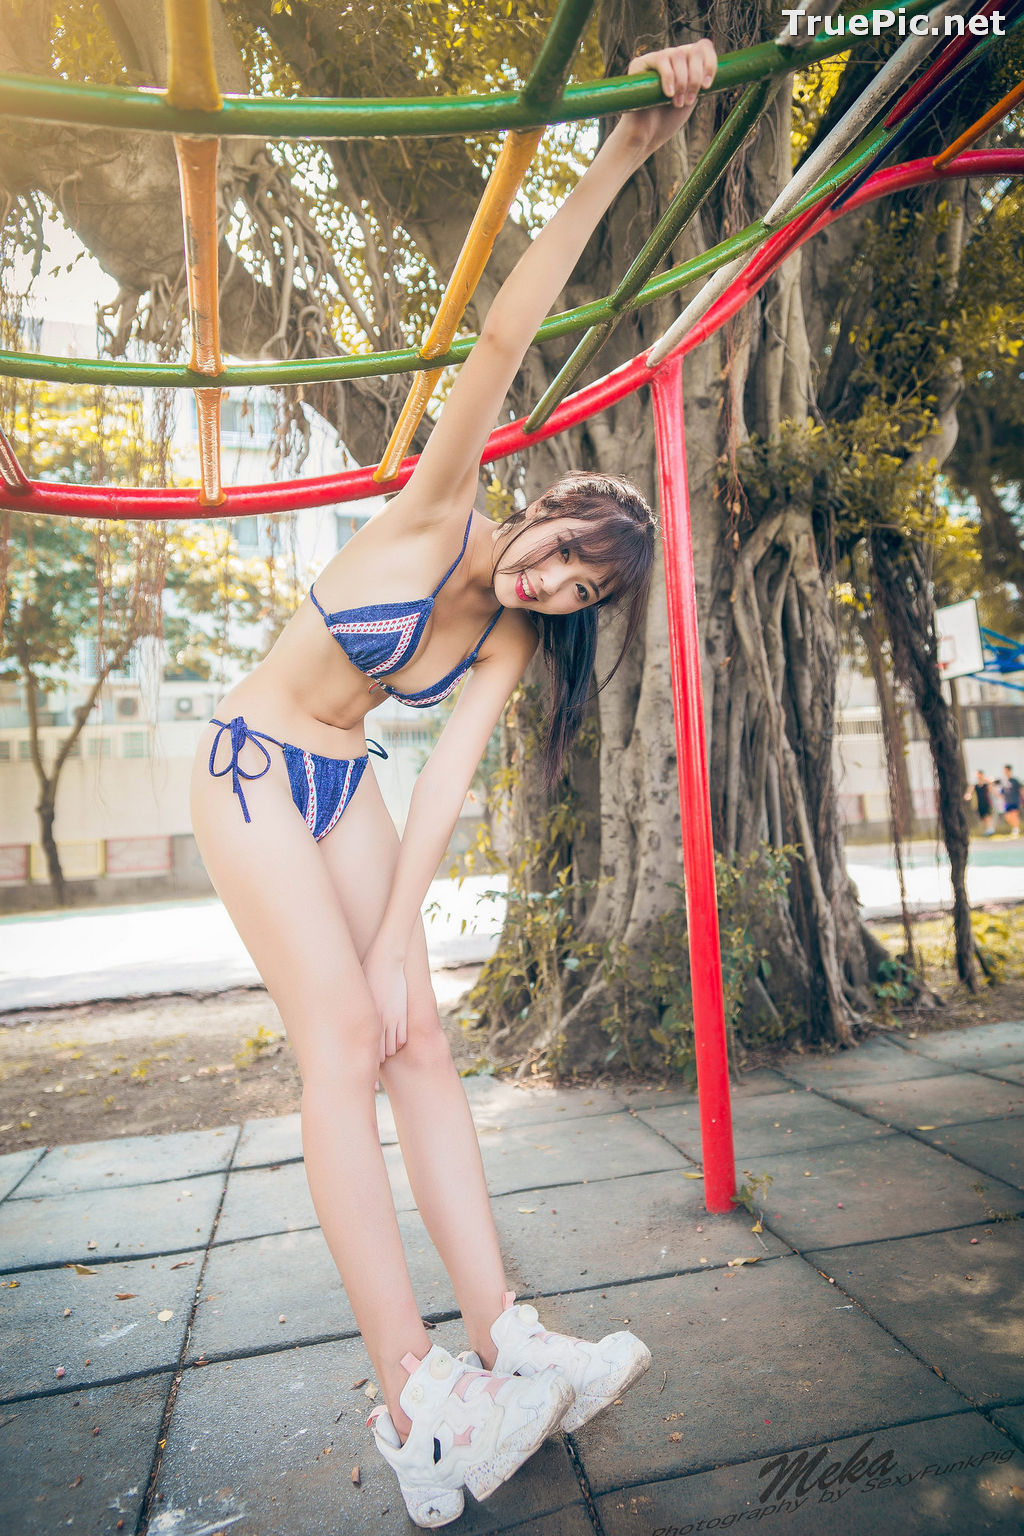 Image Taiwanese Model - 怡蒨兒Meka - Beautiful and Sexy Sport Girl - TruePic.net - Picture-6